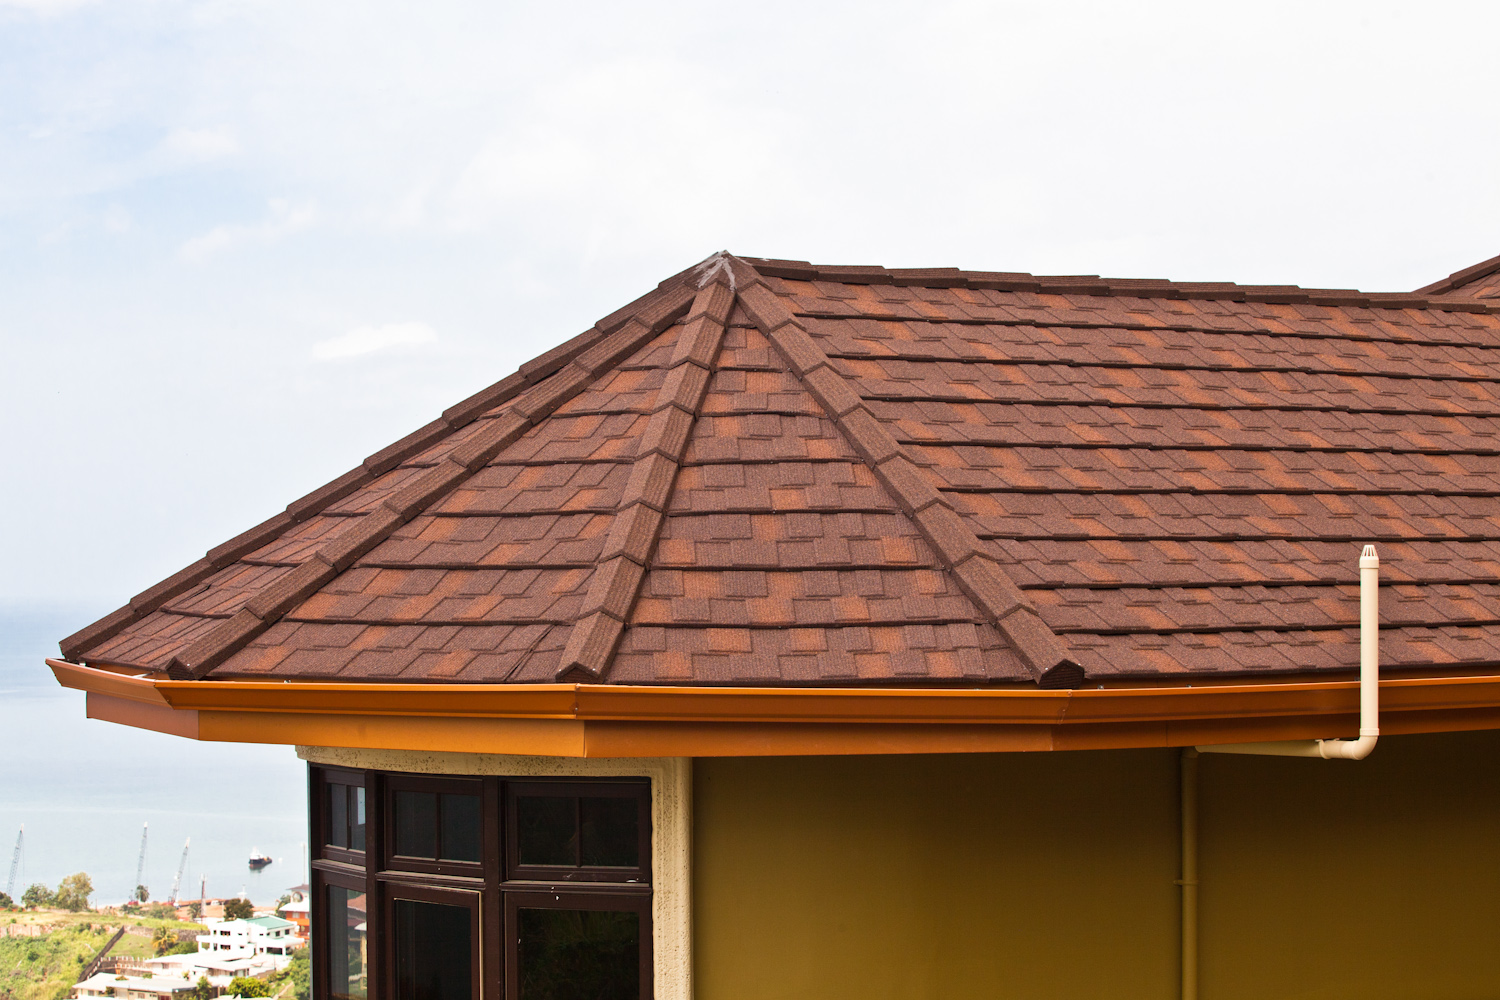 DECRA Roofing Systems Shingle Series Metal Roof Tile Project Stone Coated  Finish   Bark   Lifetime Solutions In Trinidad   The Building Source